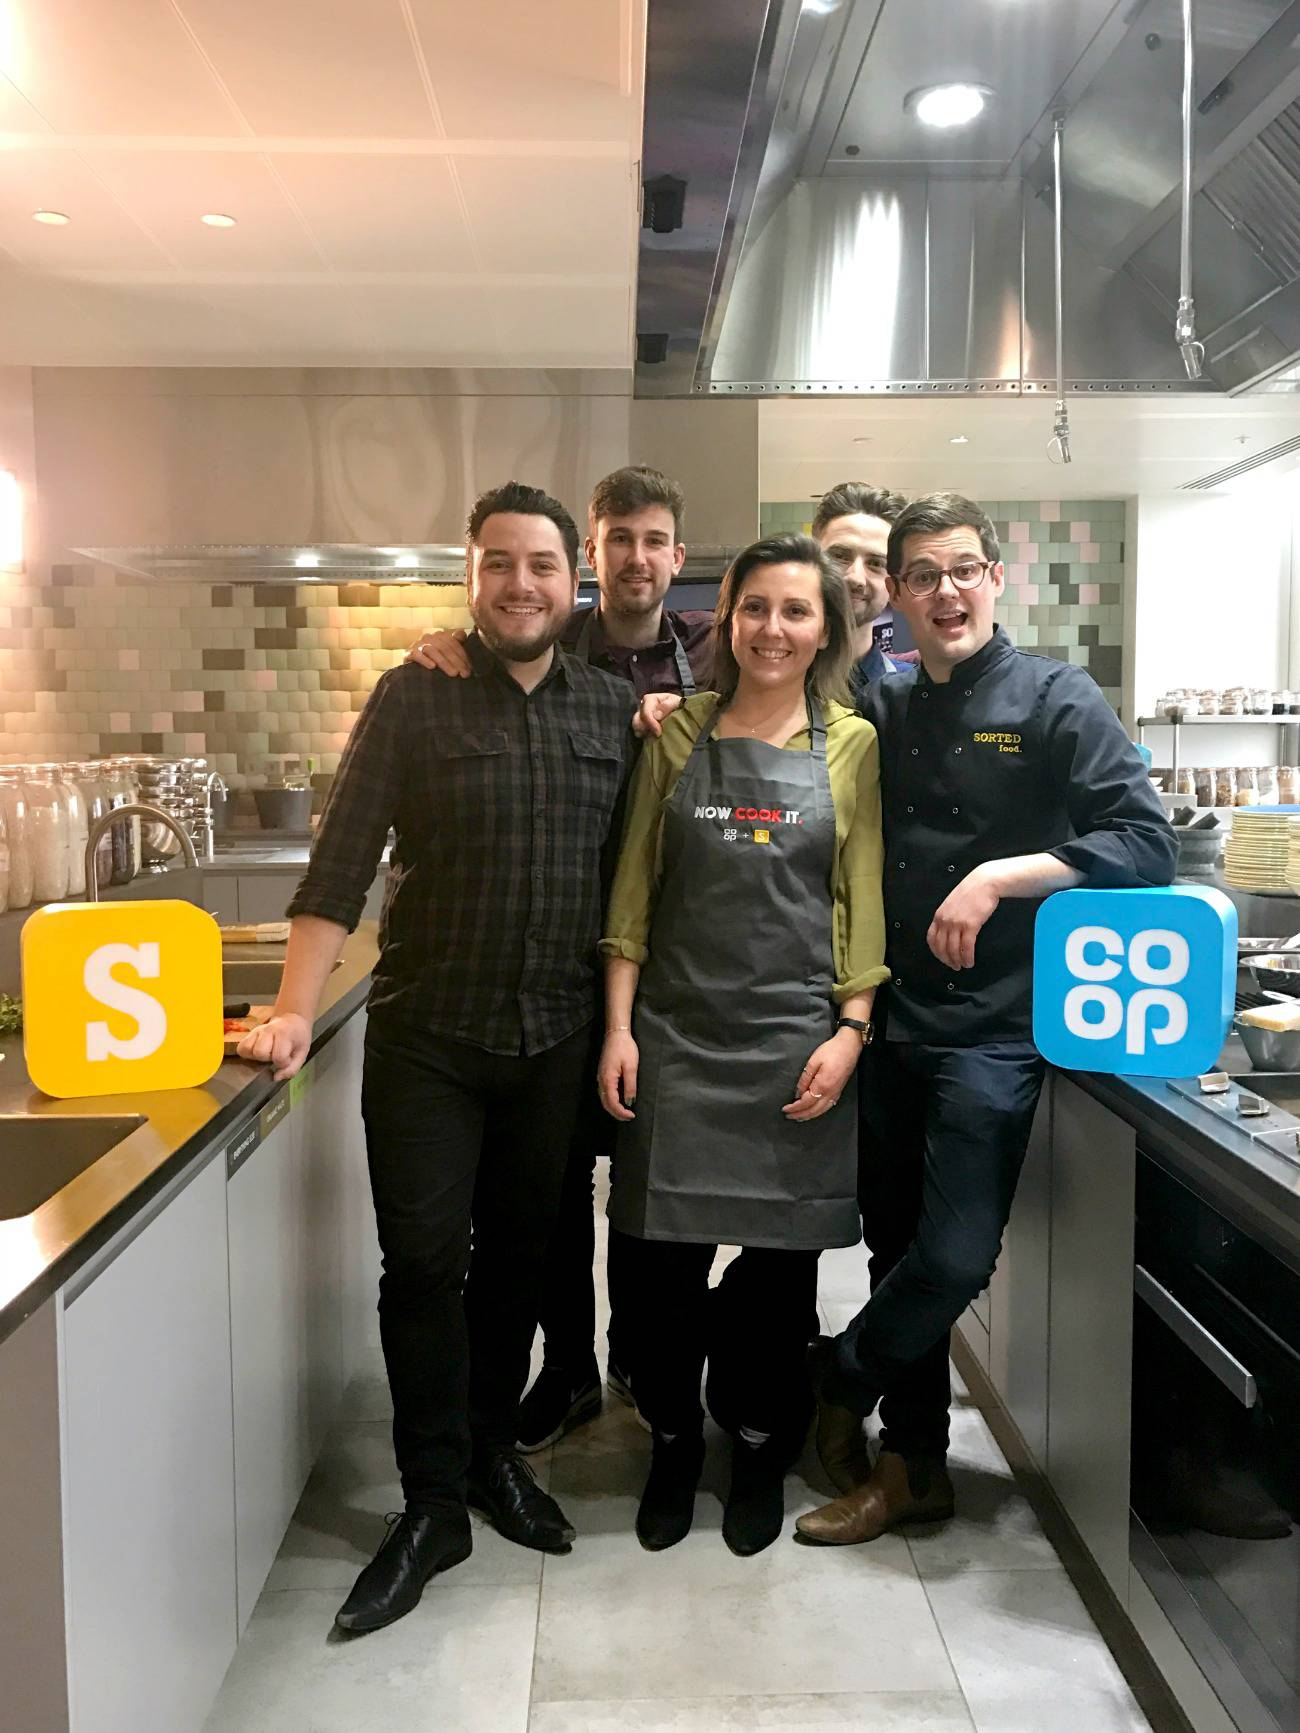 Learn how you can up your food game with SORTEDFood and Co-op with #NowCookIt